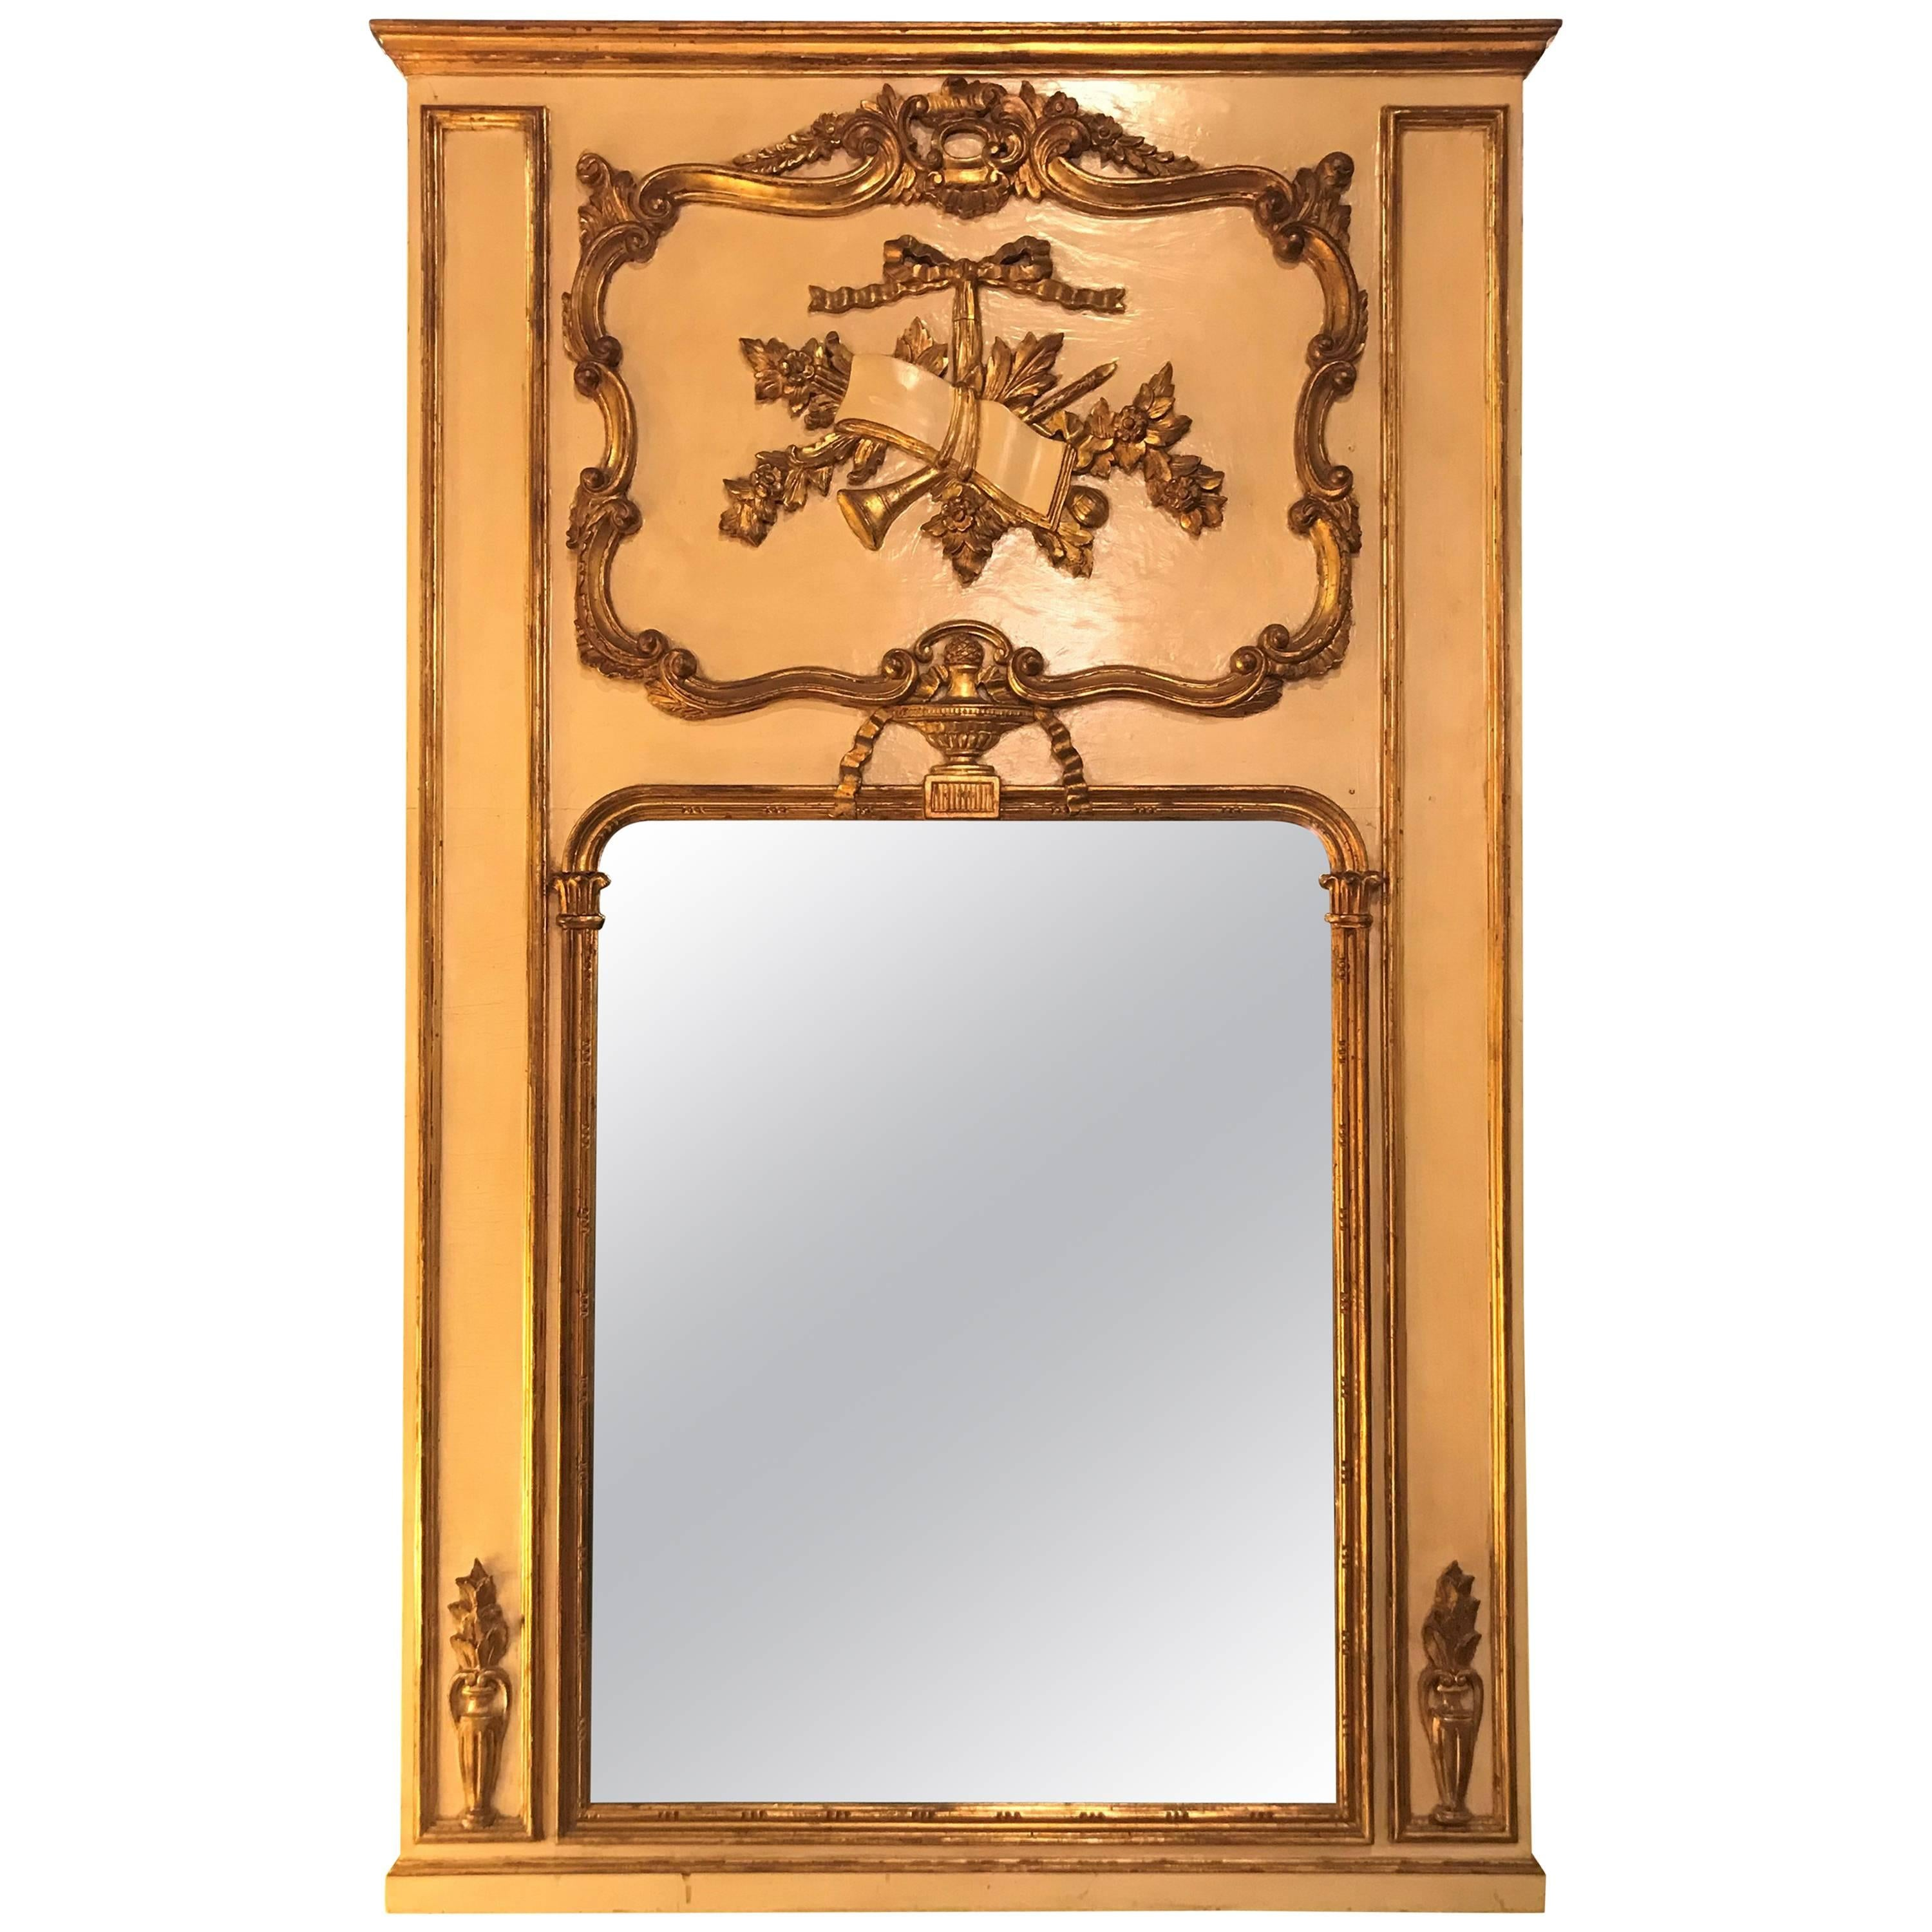 Louis XVI Style Painted and Parcel-Gilt Trumeau Console or over the Mantle Mirror